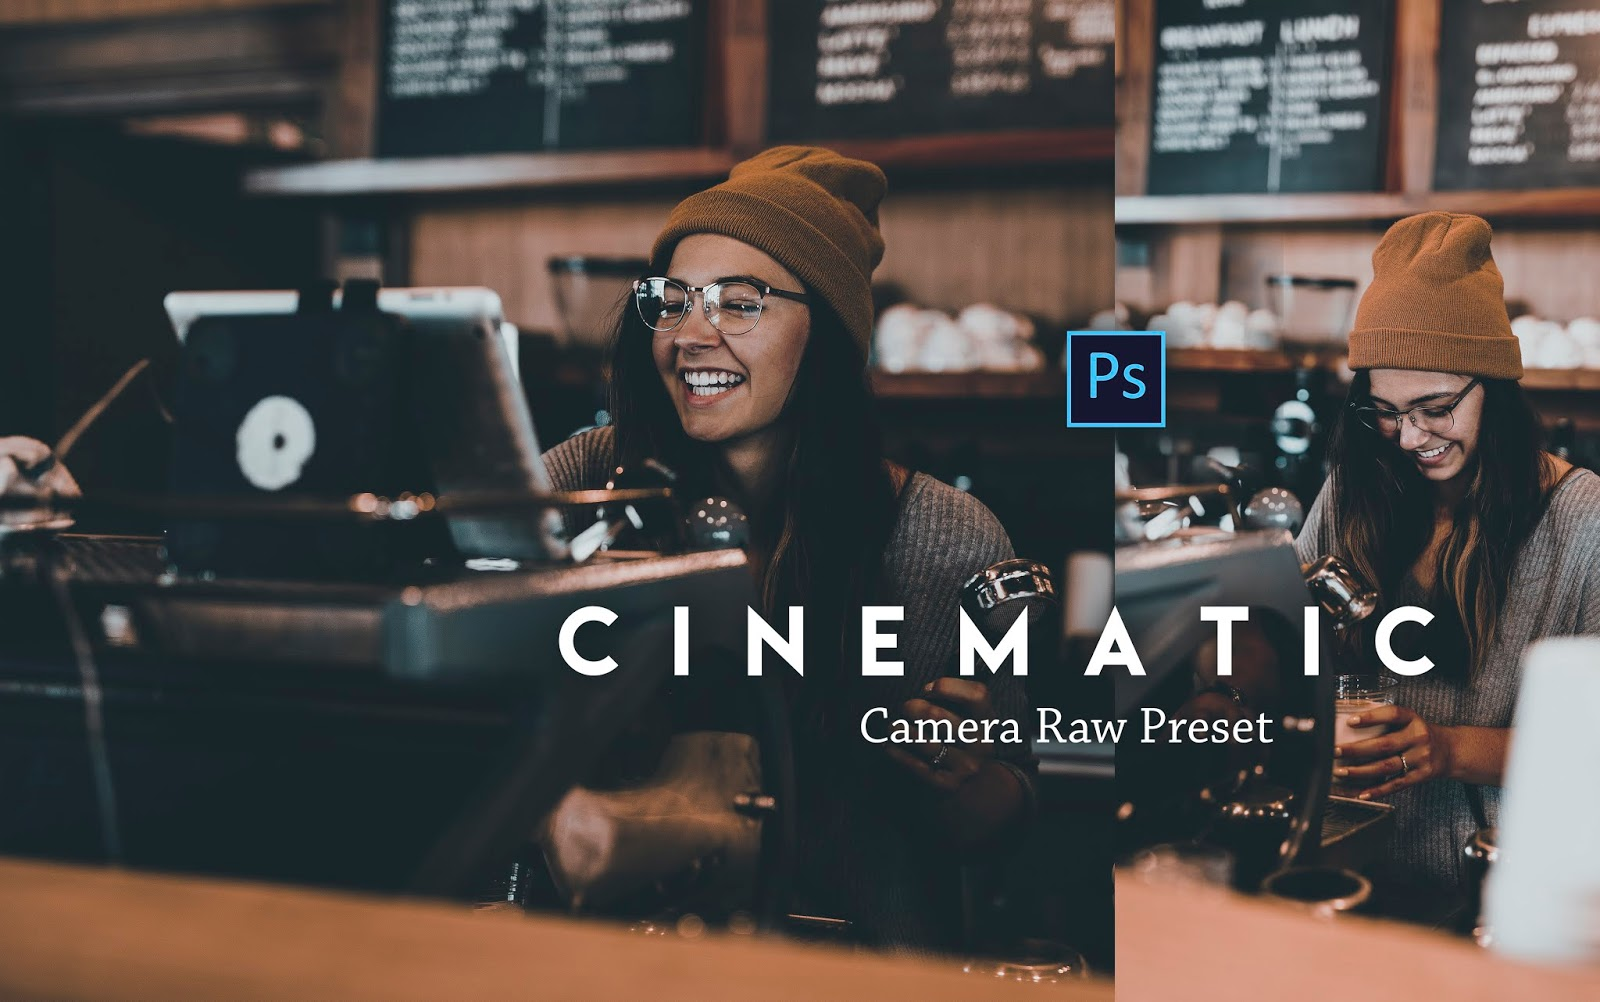 Download Cinematic Camera Raw Presets for Free | How to Make Cinematic Photos in Photoshop cc